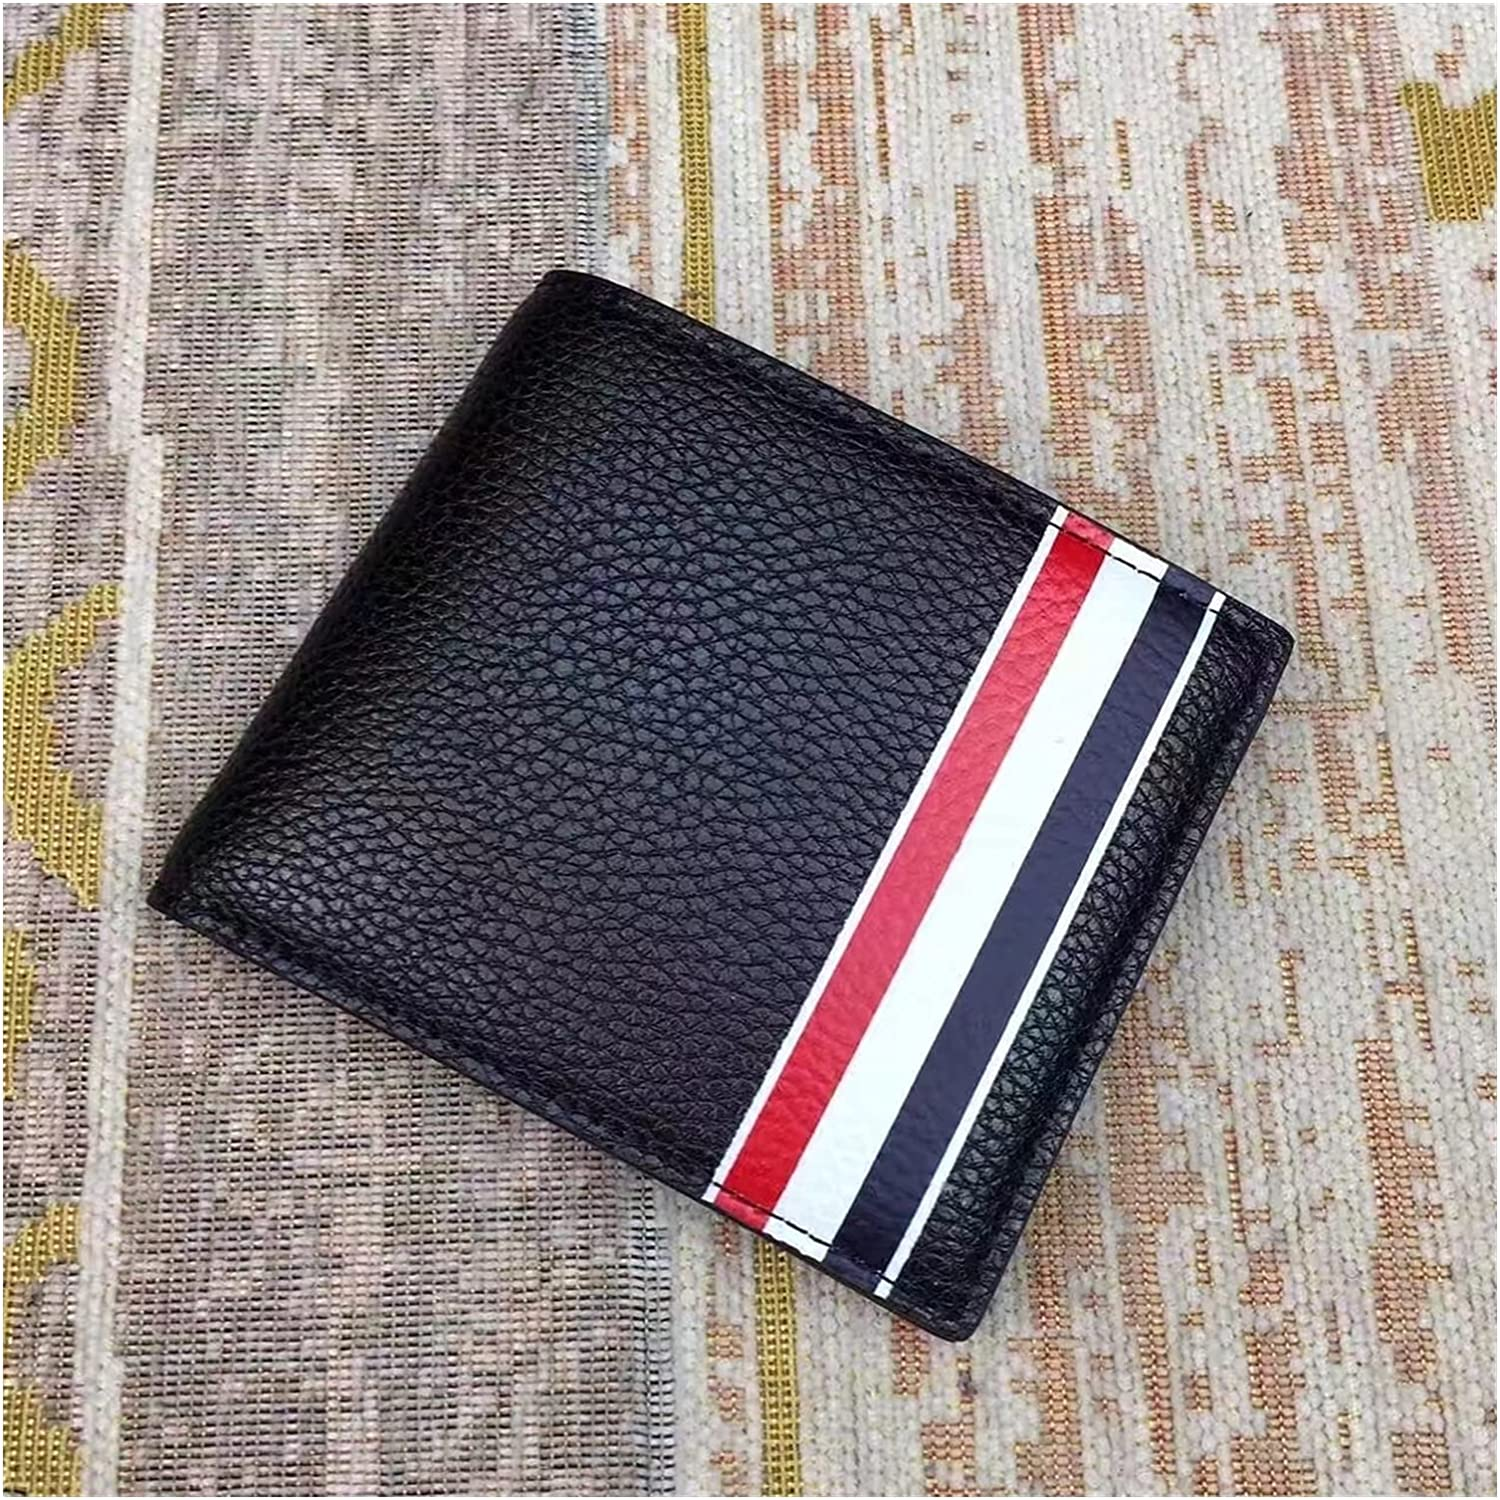 JQDMBH Small Wallet Card Holder Max 86% OFF Genuine Mail order Sh Leather